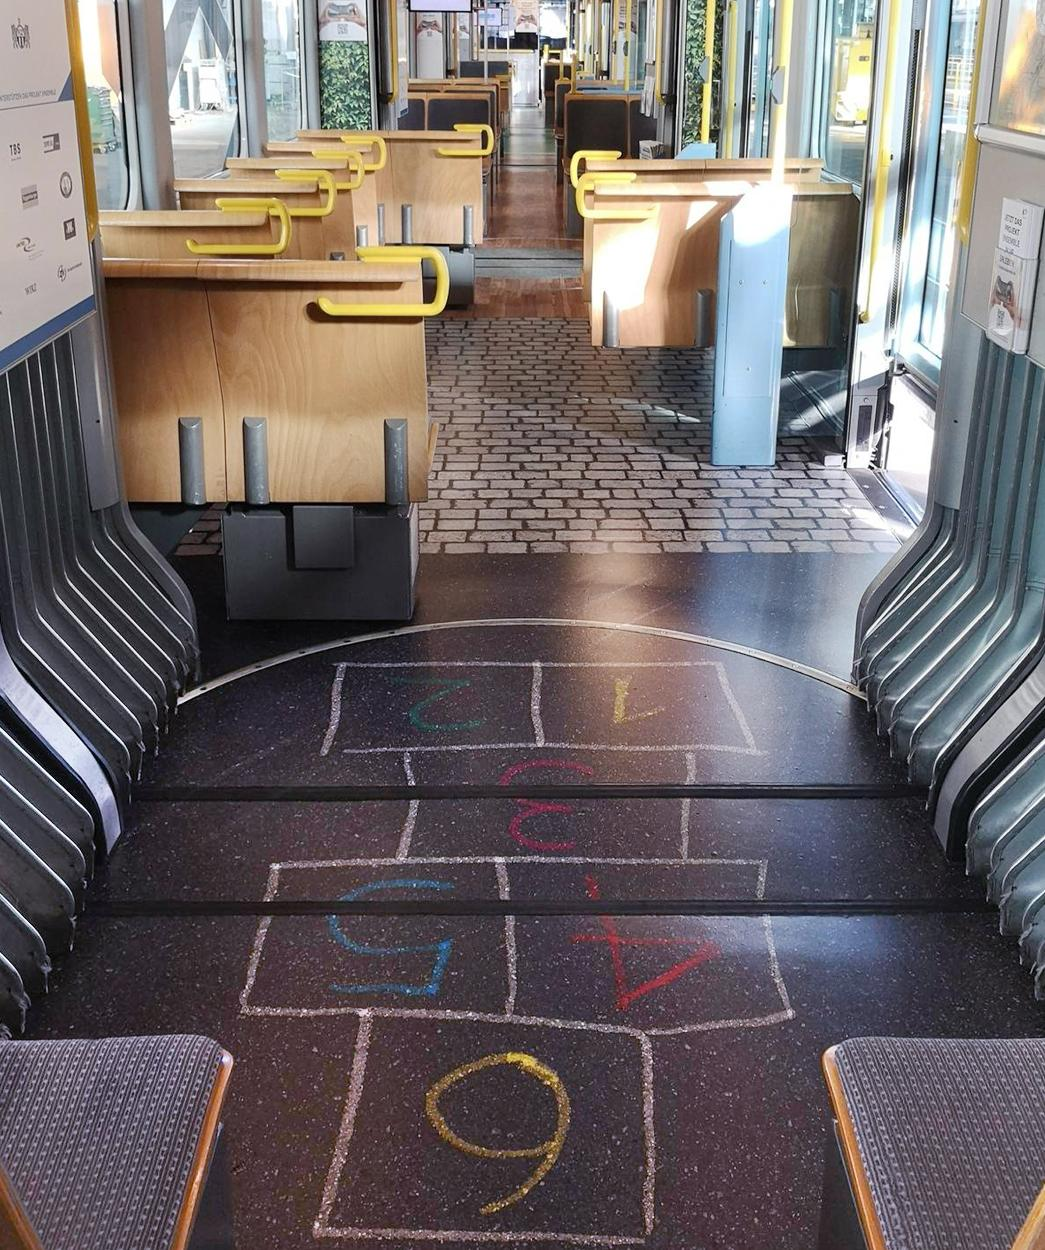 News Ensemble Tram Bild Medium 03